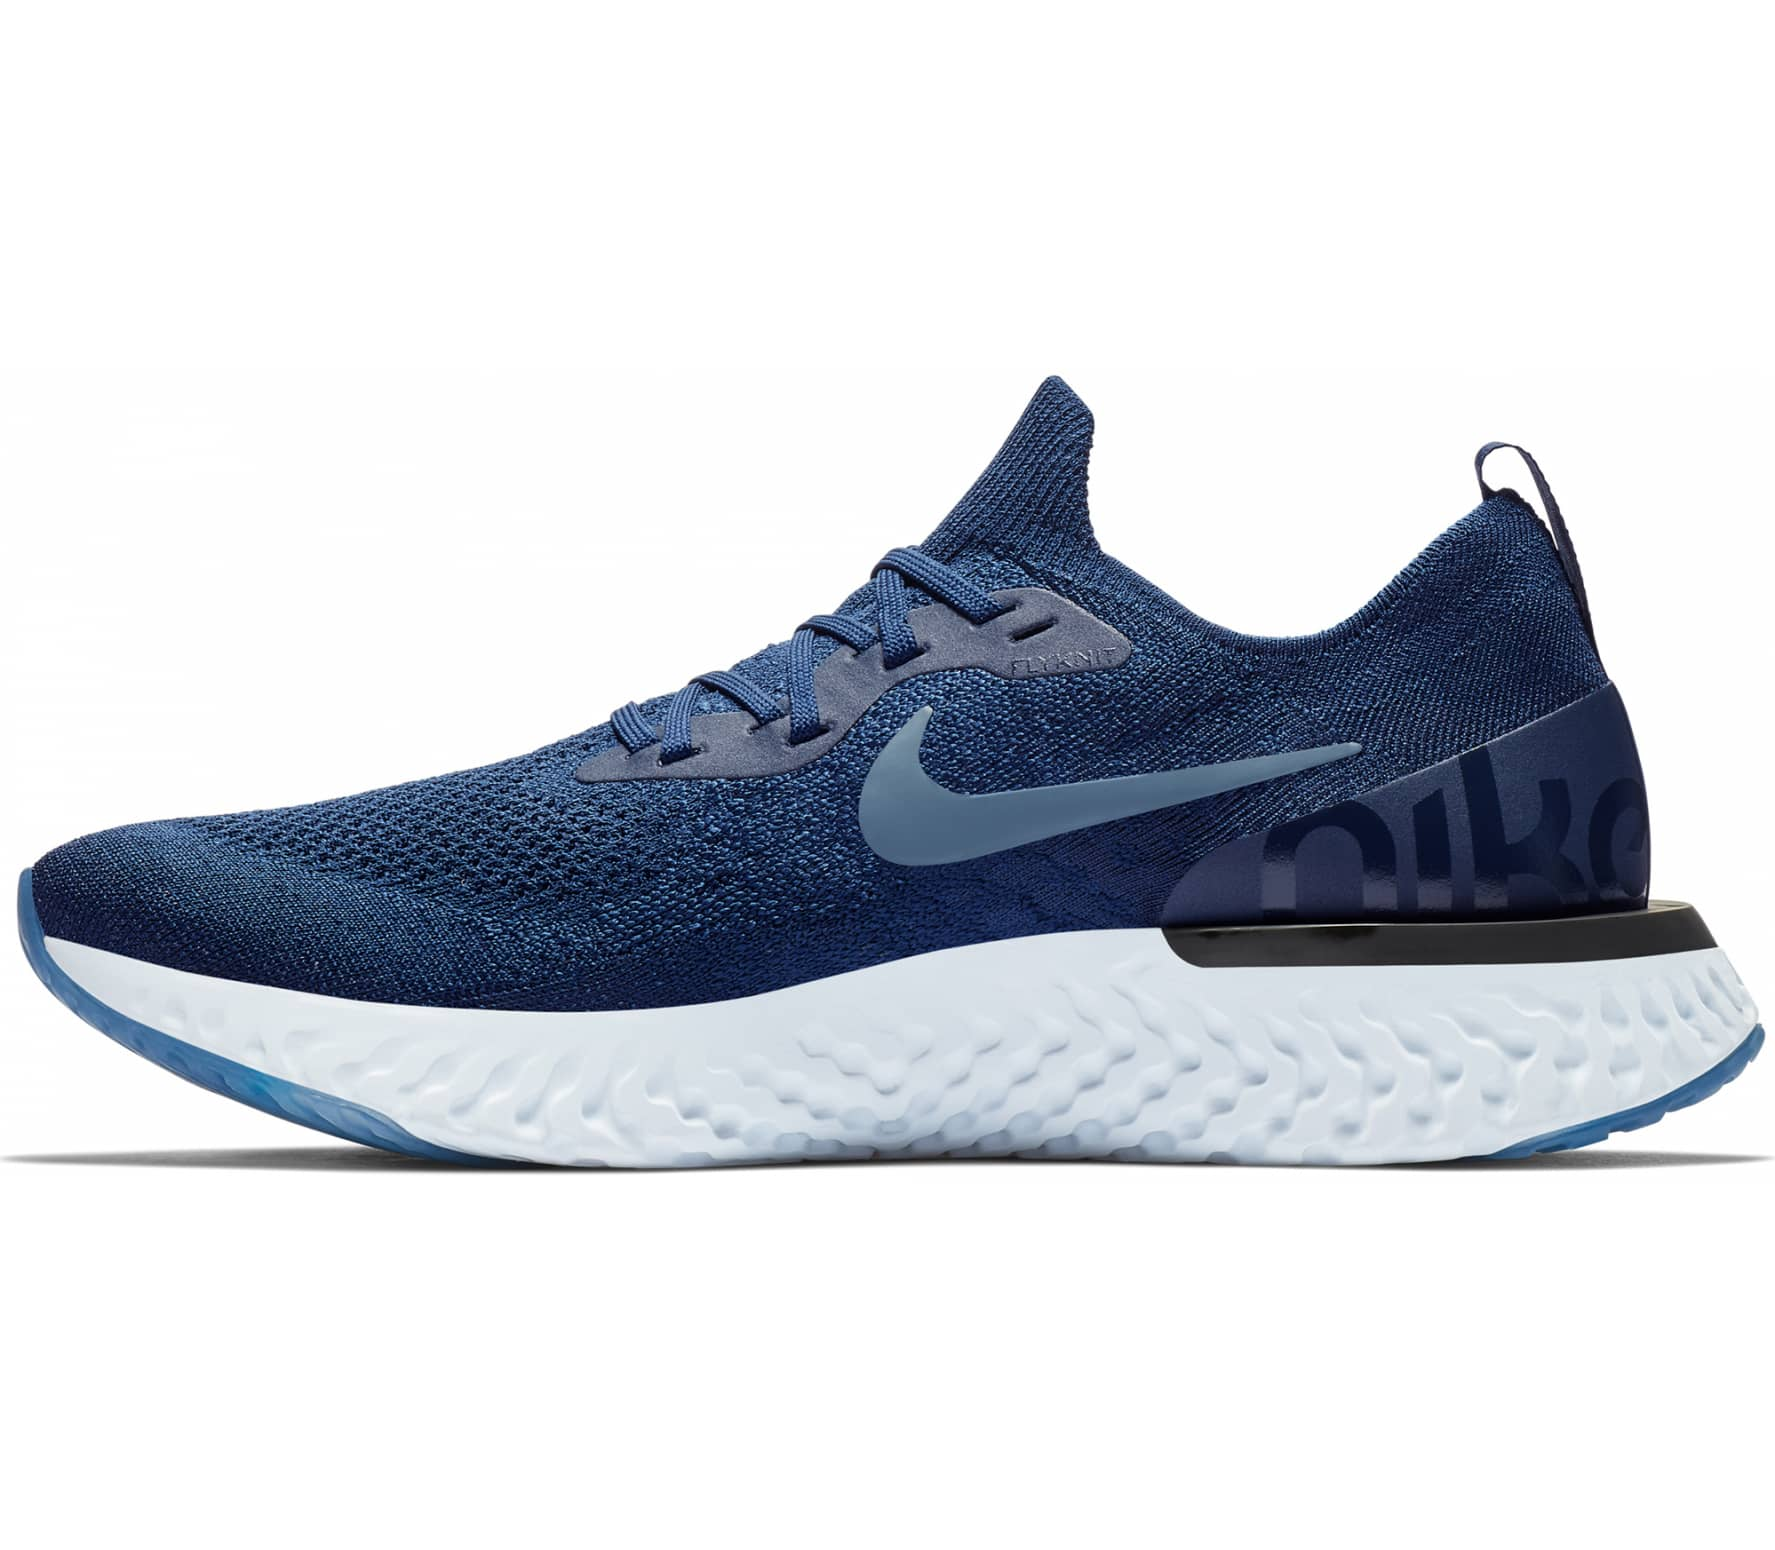 db7fef9498be Nike - Epic React Flyknit men s running shoes (blue) - buy it at the ...